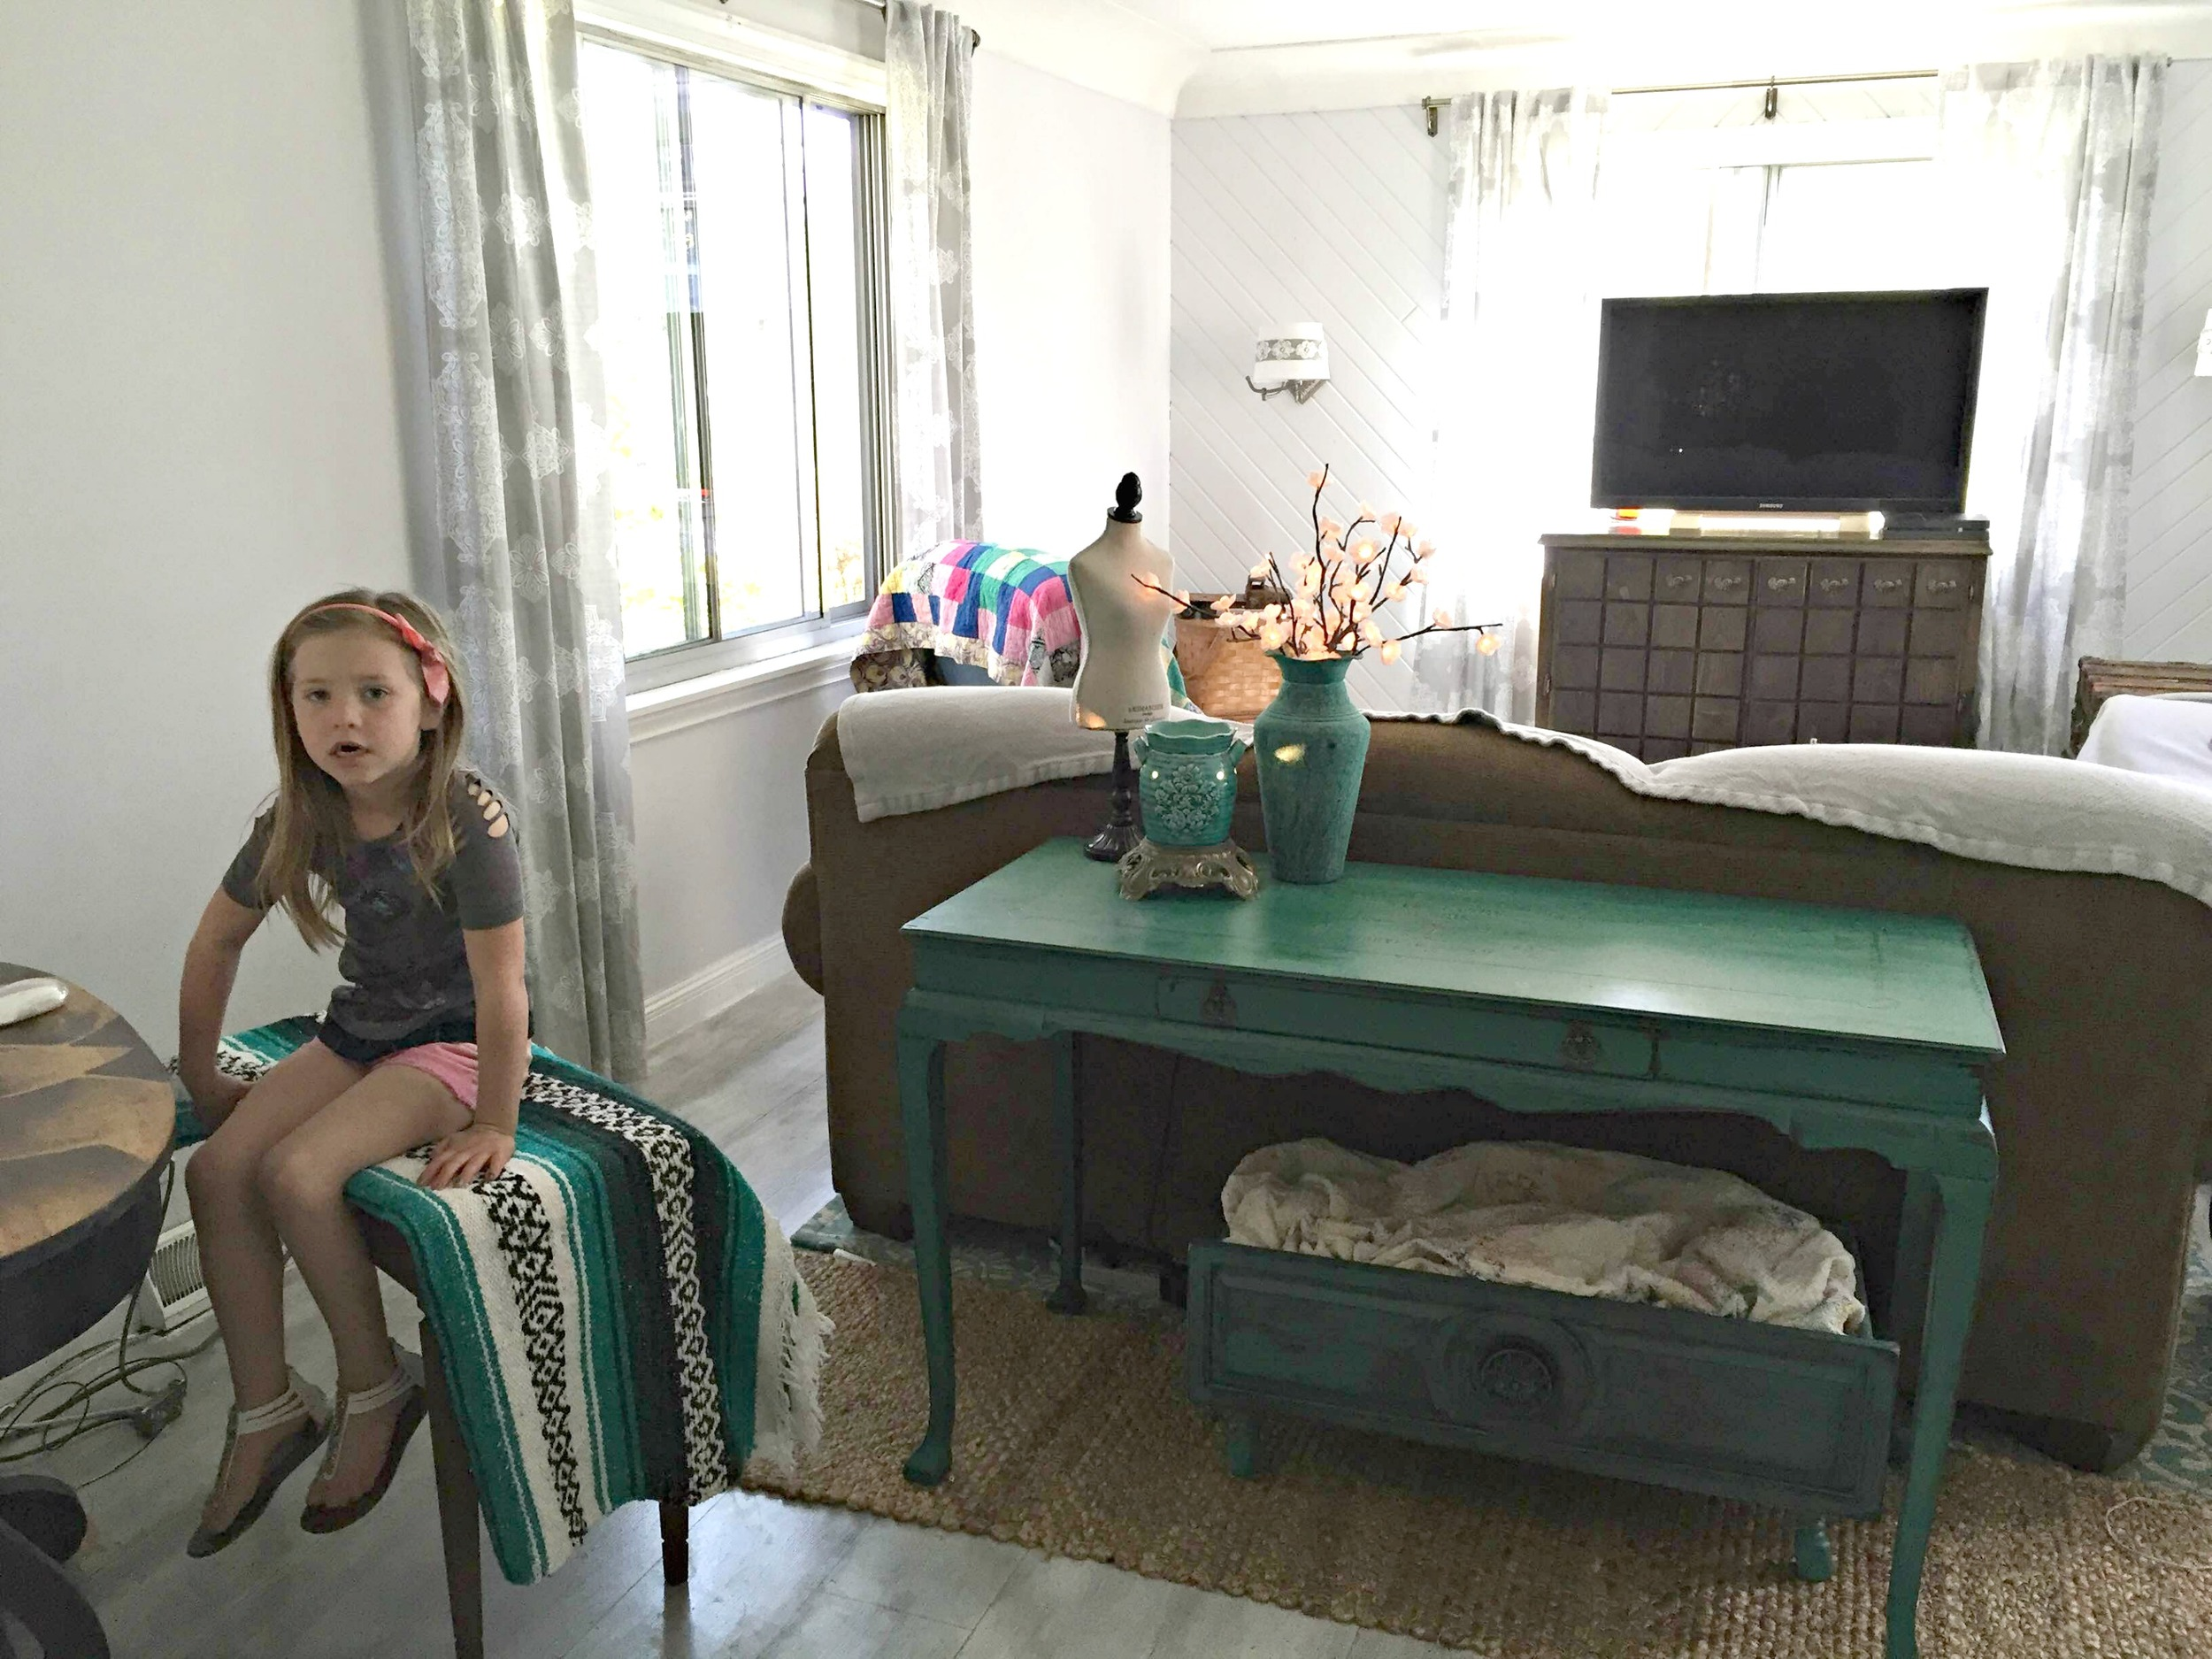 Sarah's daughter, Elsie, hanging out in their cozy family room.